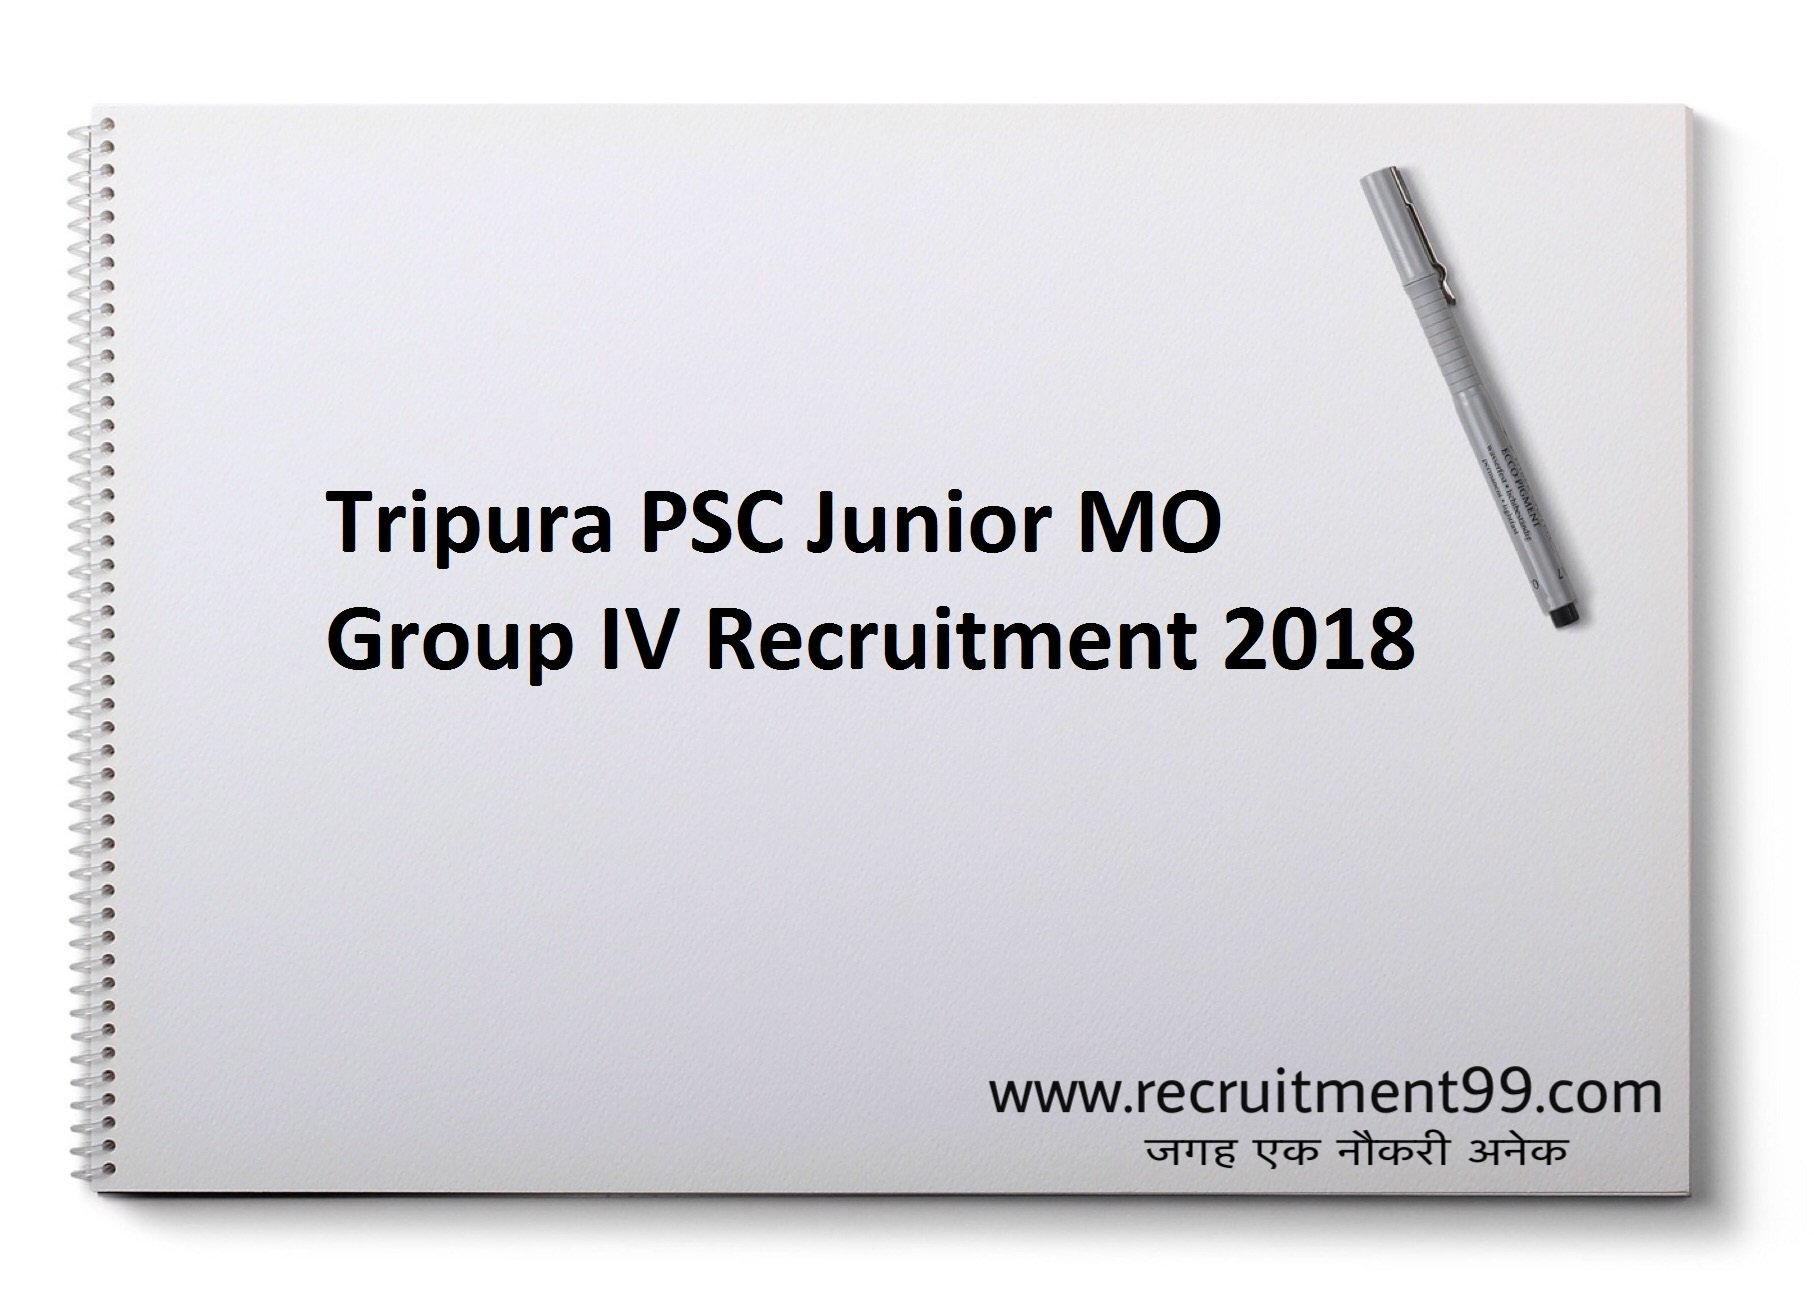 Tripura PSC Junior MO Group IV Recruitment Admit Card Result 2018